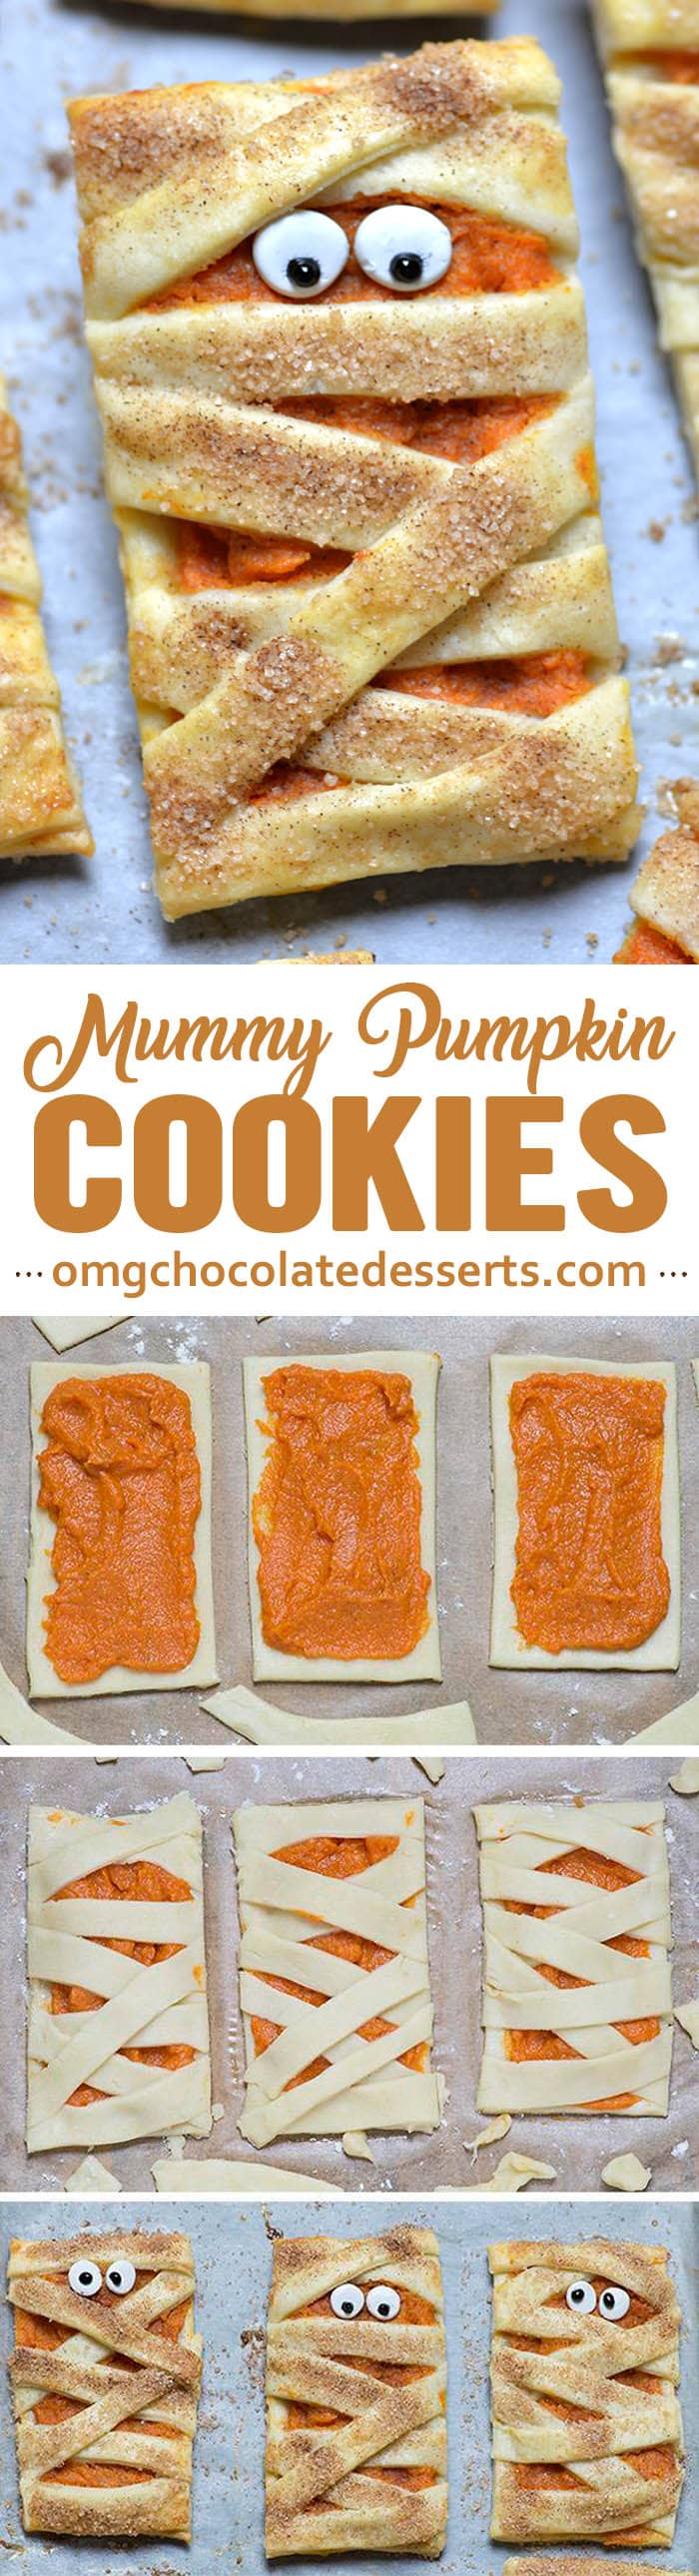 These delicious mummy pumpkin cookies are adorable and perfect for Halloween! So simple and easy to make, and perfect for parties!